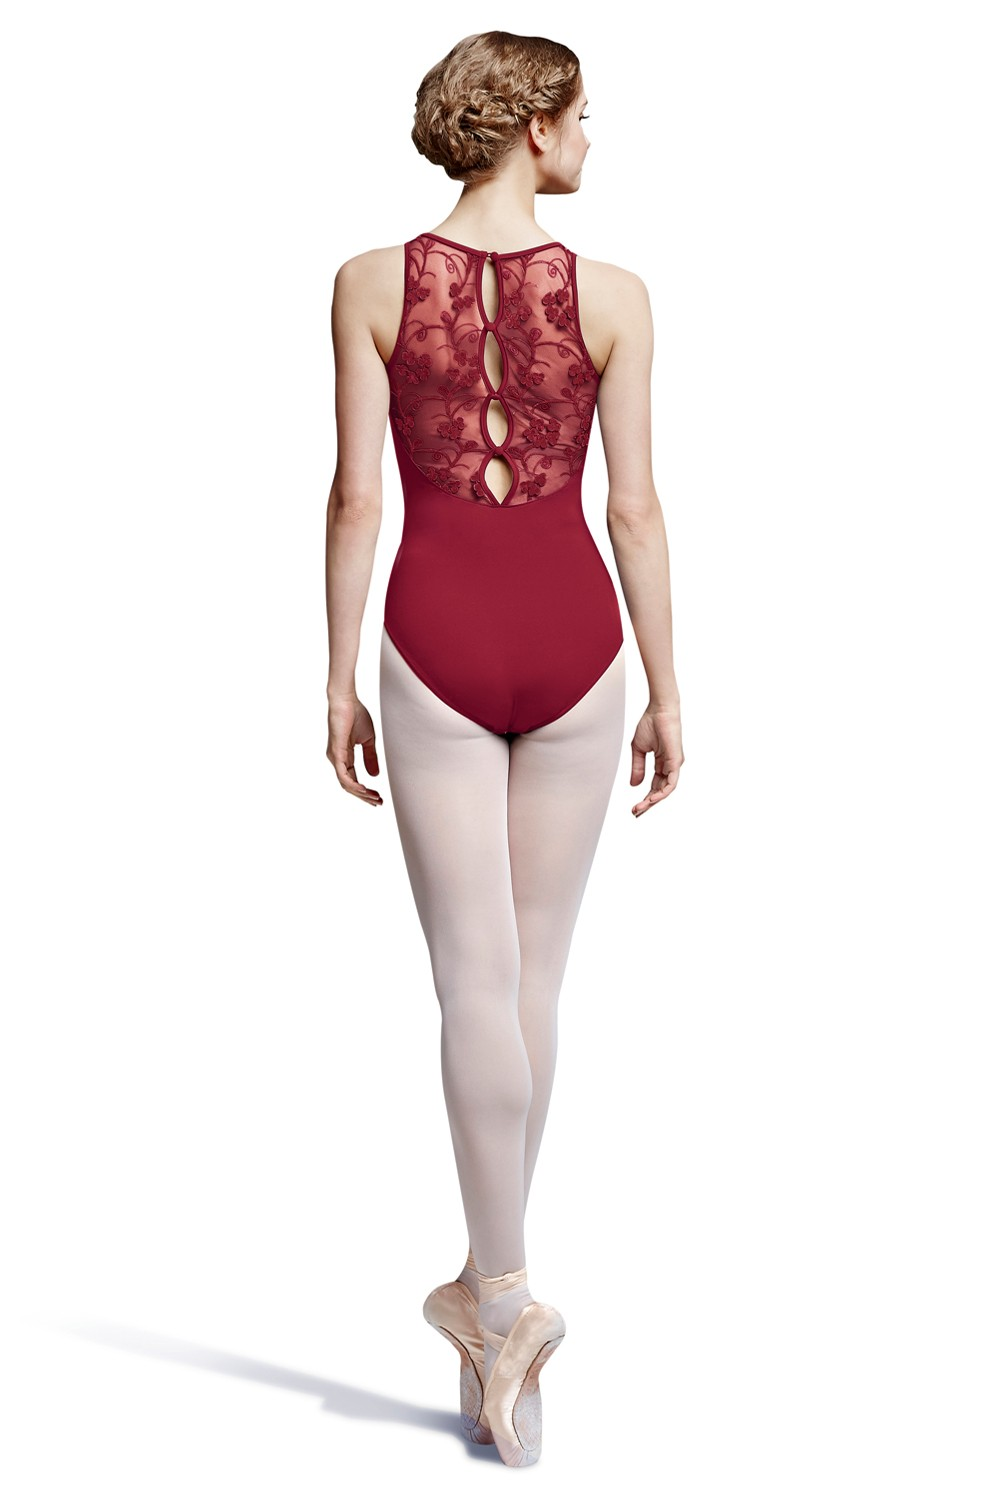 Clayii Women's Dance Leotards